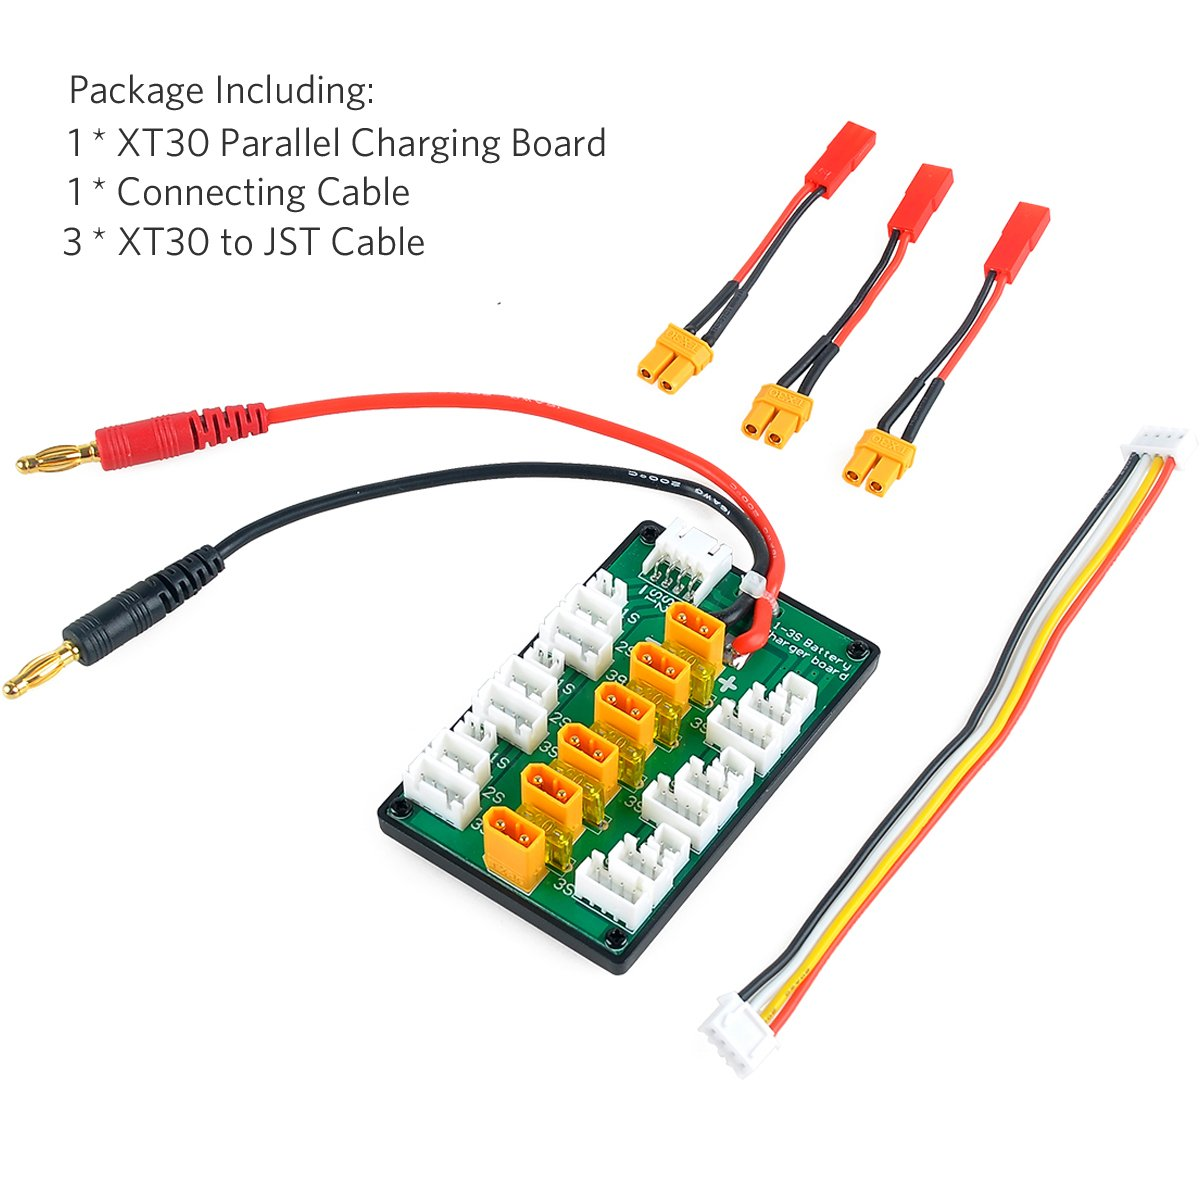 Xt30 Parallel Charging Board For 2s 3s Lipo Batteries Compatible Wiring With Jst Connector Crazepony